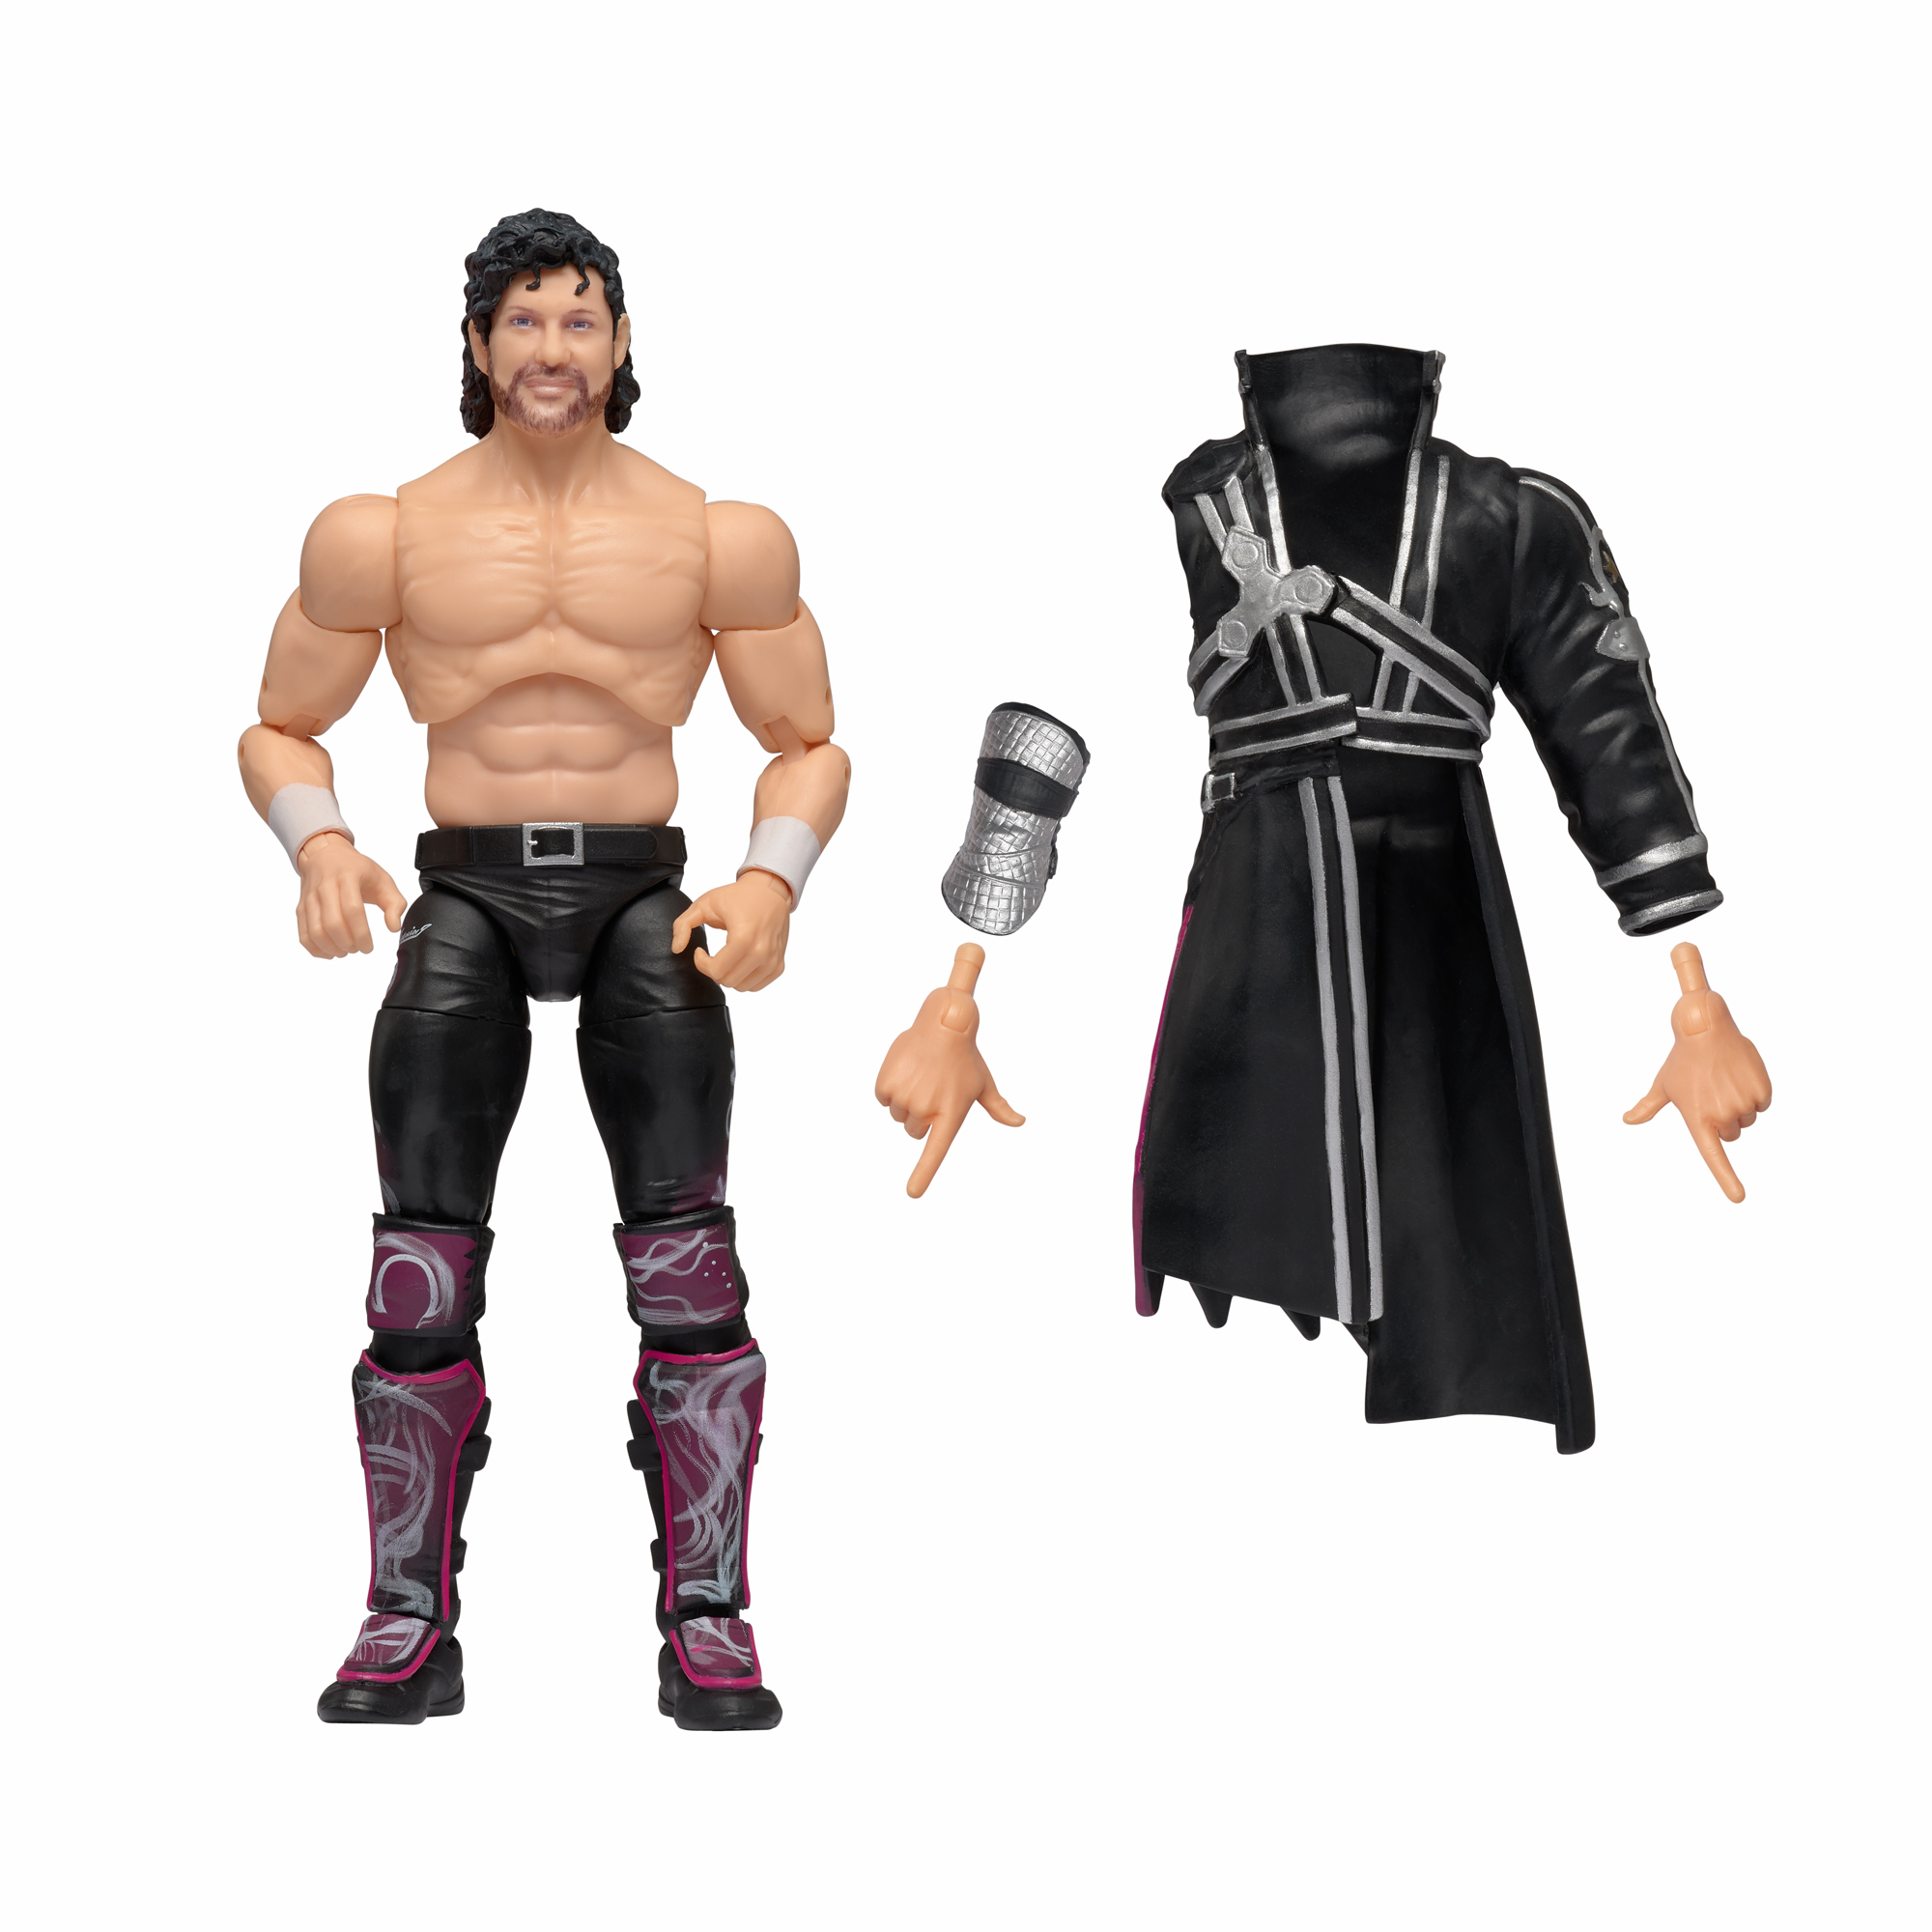 AEW Young Bucks Unrivaled Series 1 Action Figure All Elite Wrestling Collectible